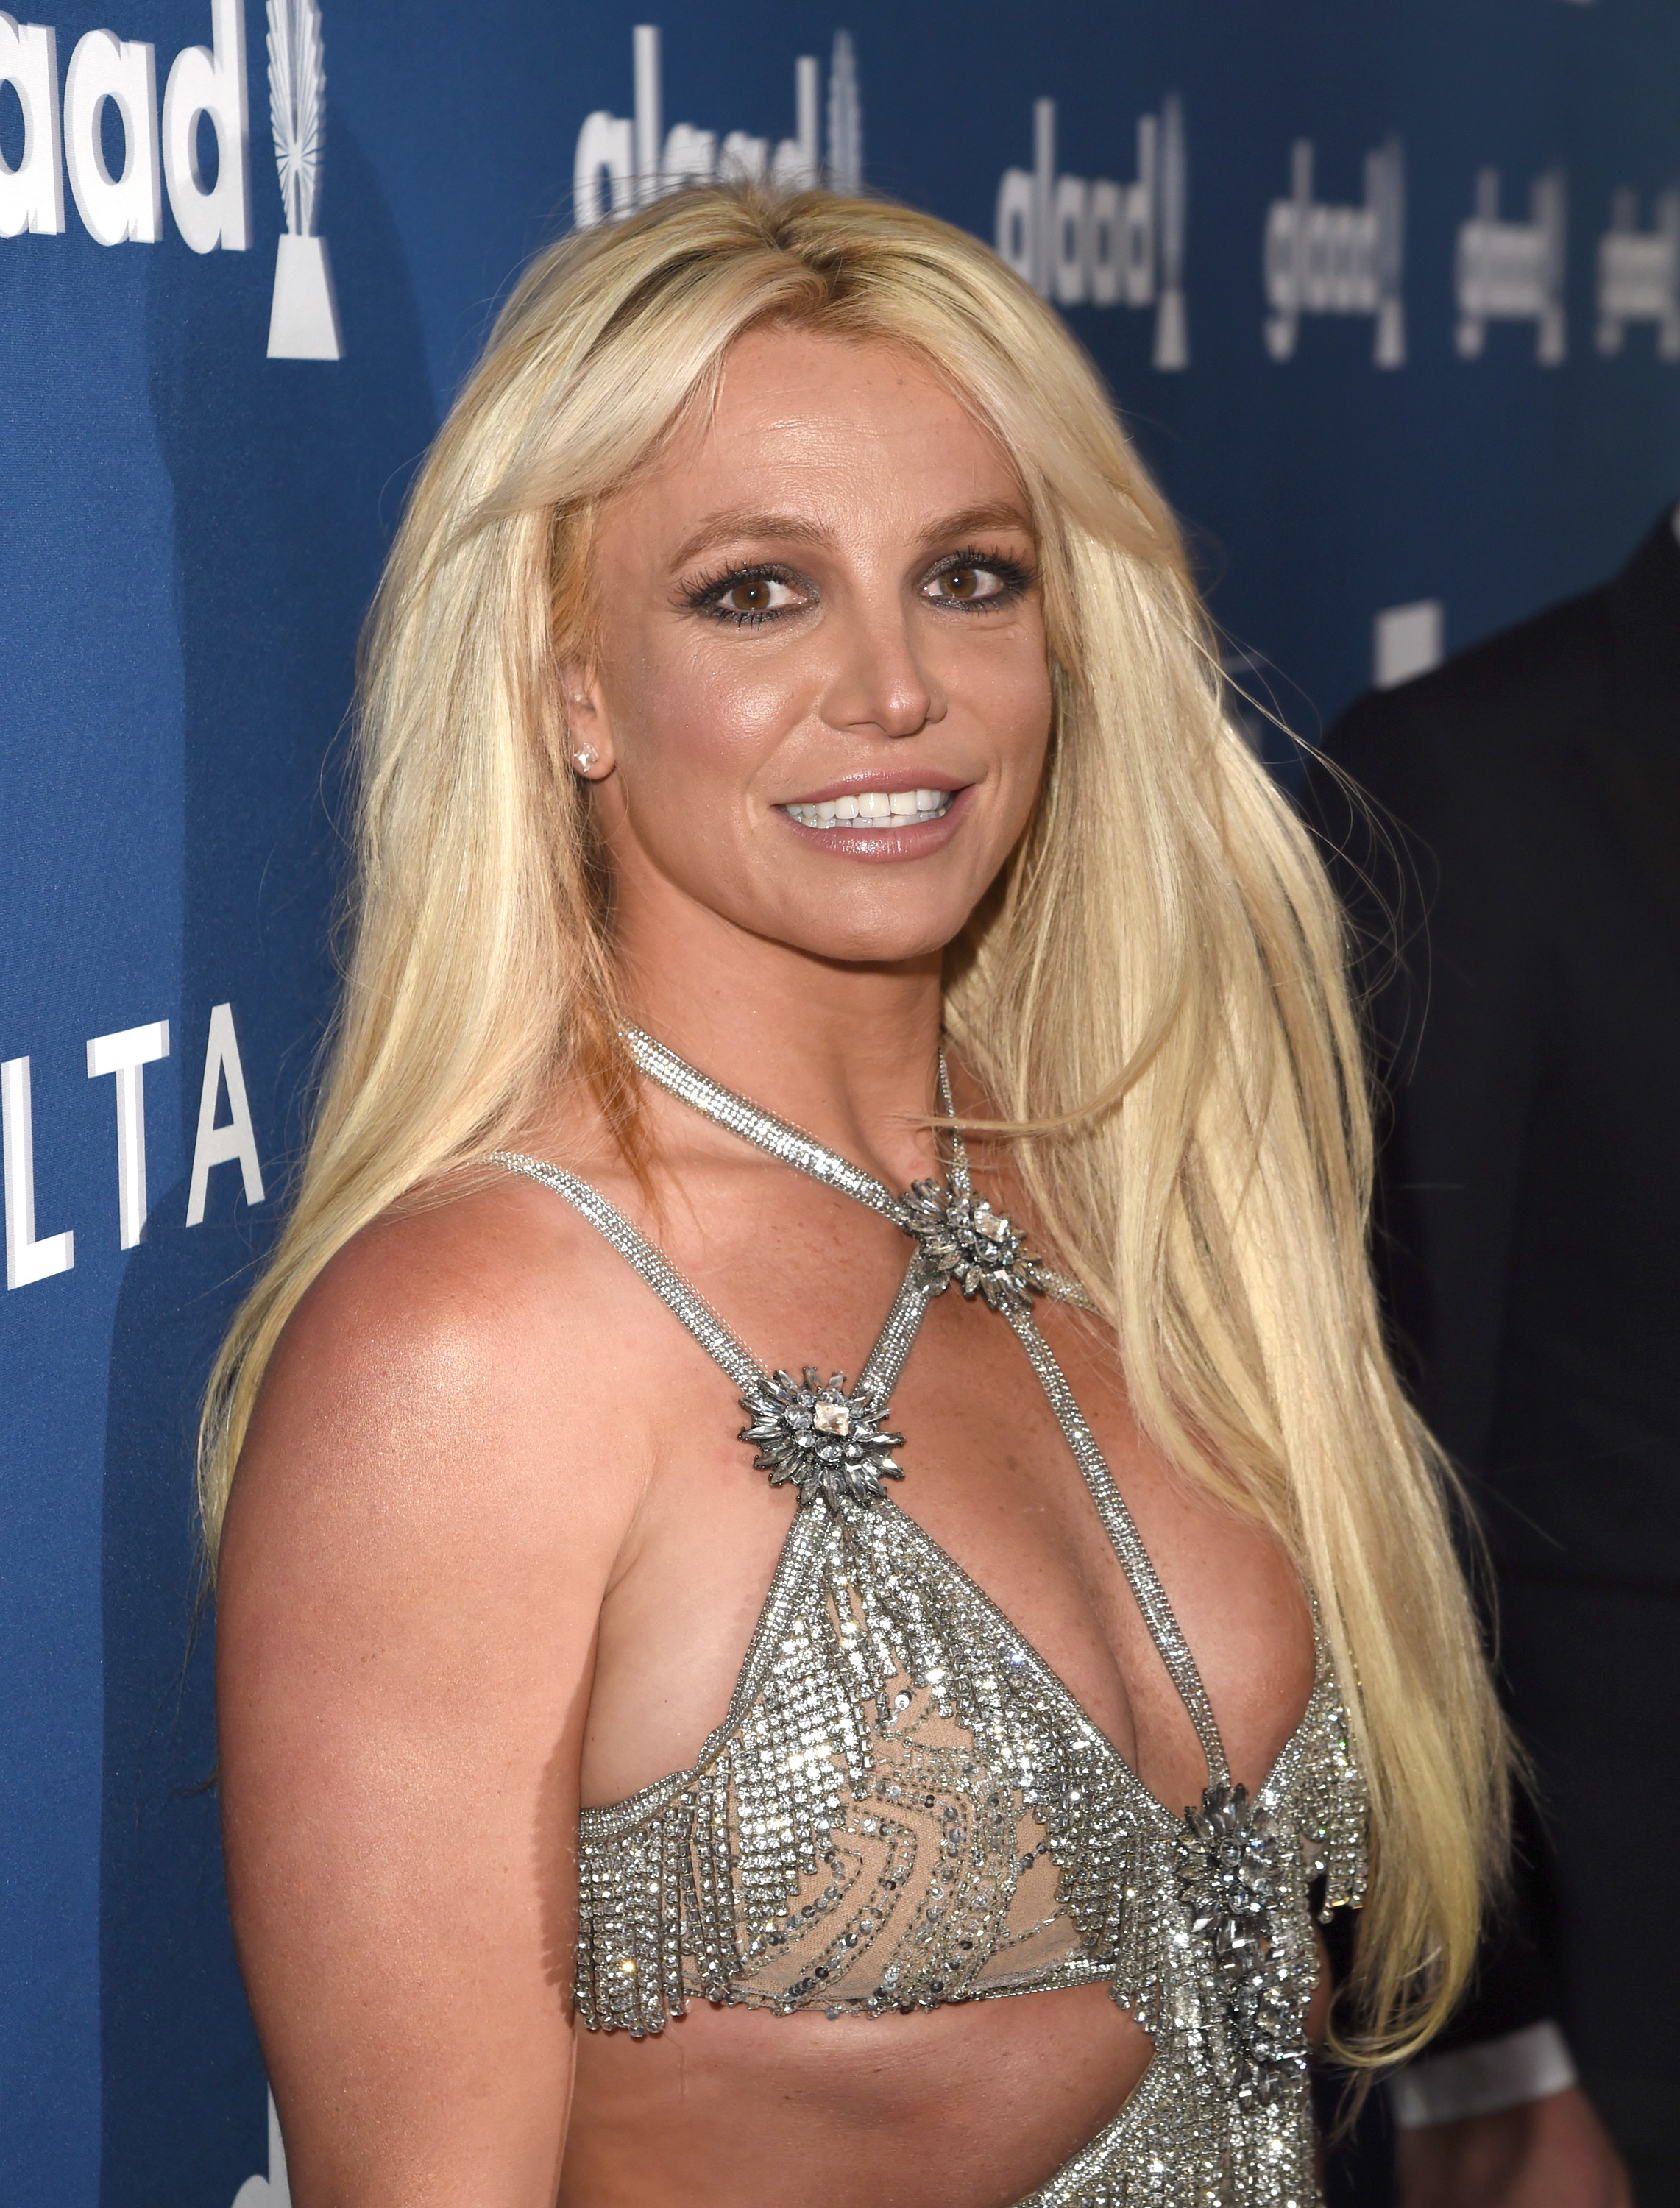 Britney Spears at the GLAAD Media Awards in 2018